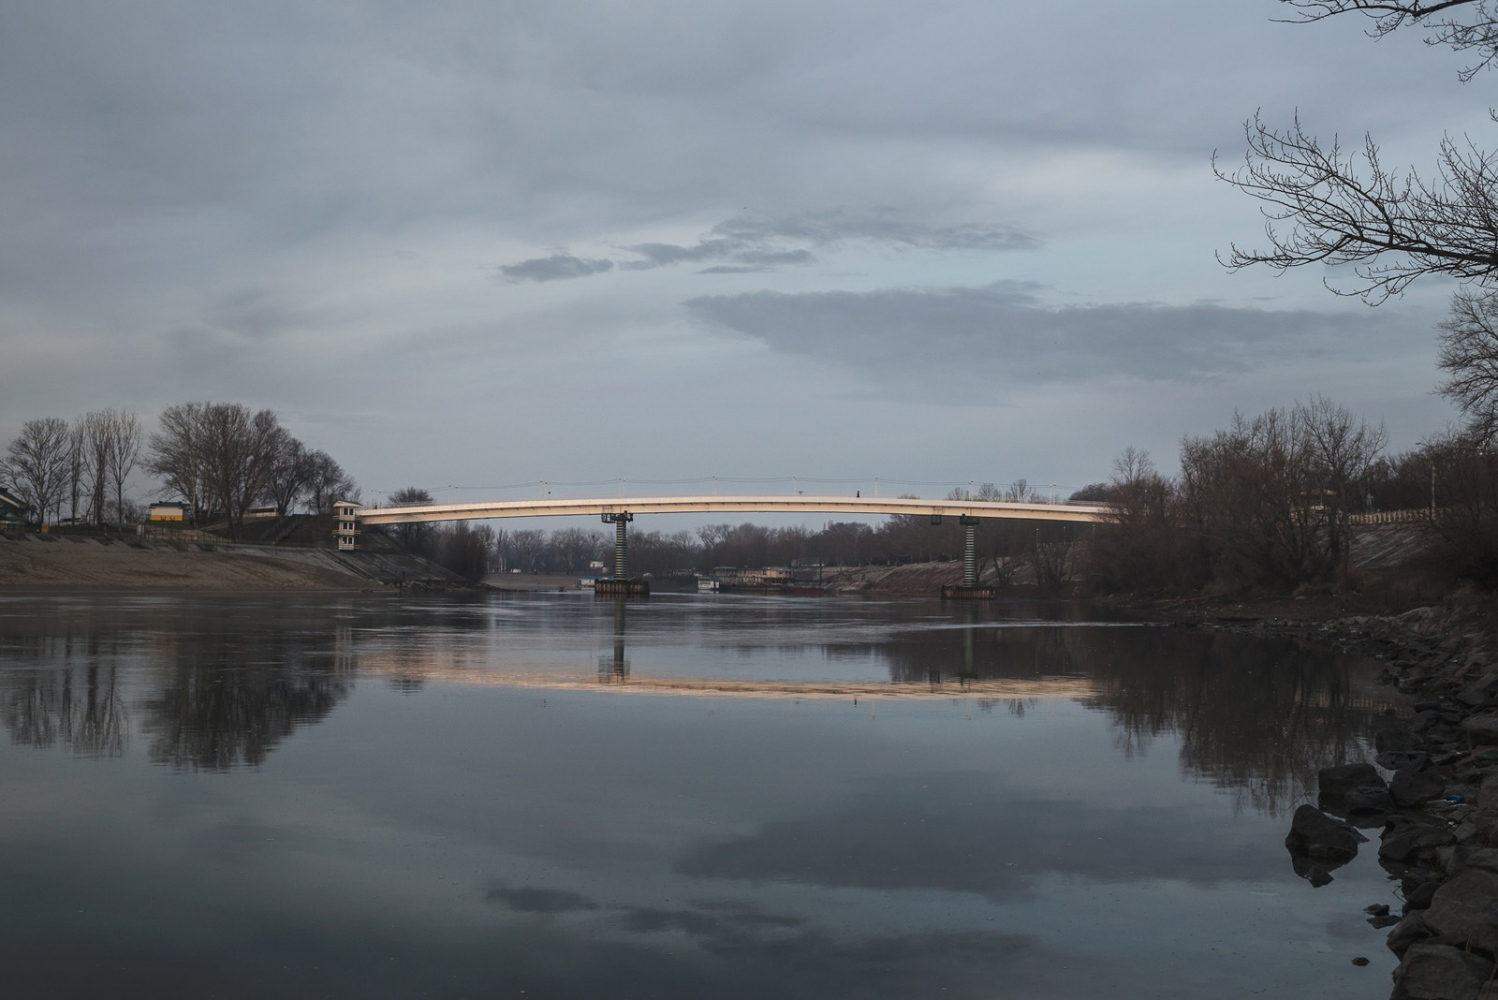 The only bridge over the Dniester river, the landmark border to Moldova, in Tiraspol, the capital of the breakaway republic of Transdniestr.